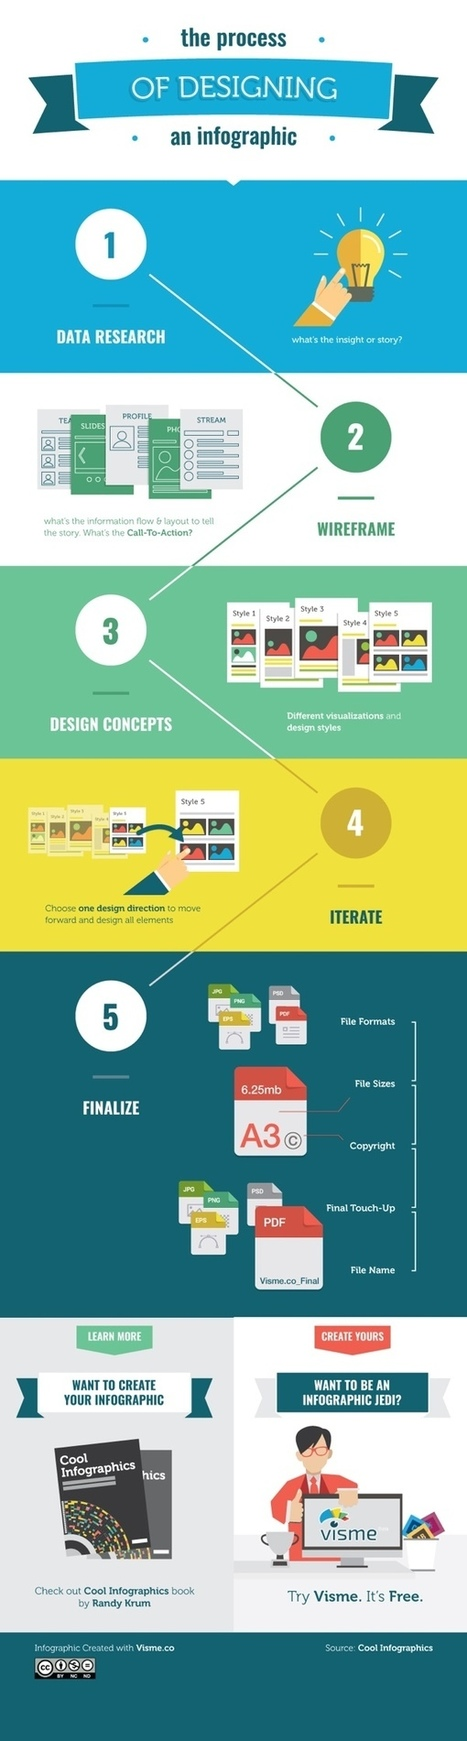 The Process of Designing an Infographic - Blog About Infographics and Data Visualization - Cool Infographics | Infographics in het onderwijs | Scoop.it